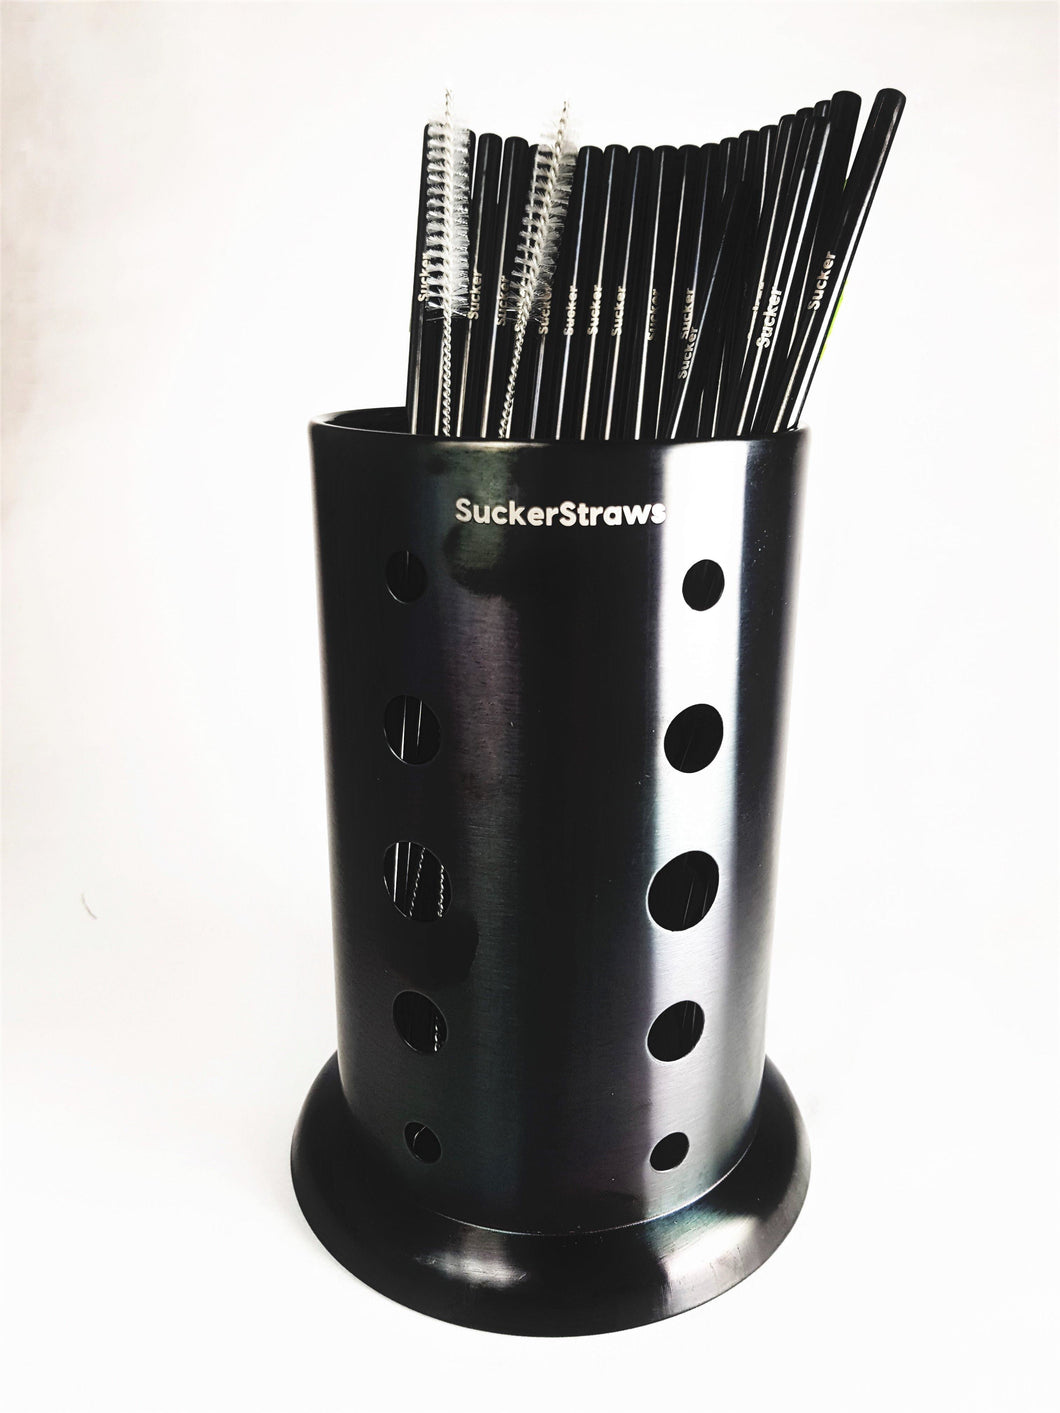 Product photo for Small Venue Starter Set showing the SuckerStraws glasswasher washing basket with metal straws and cleaning brushes displayed  SuckerStraws are bulk wholesale reusable metal straws for bars and restaurants available worldwide.